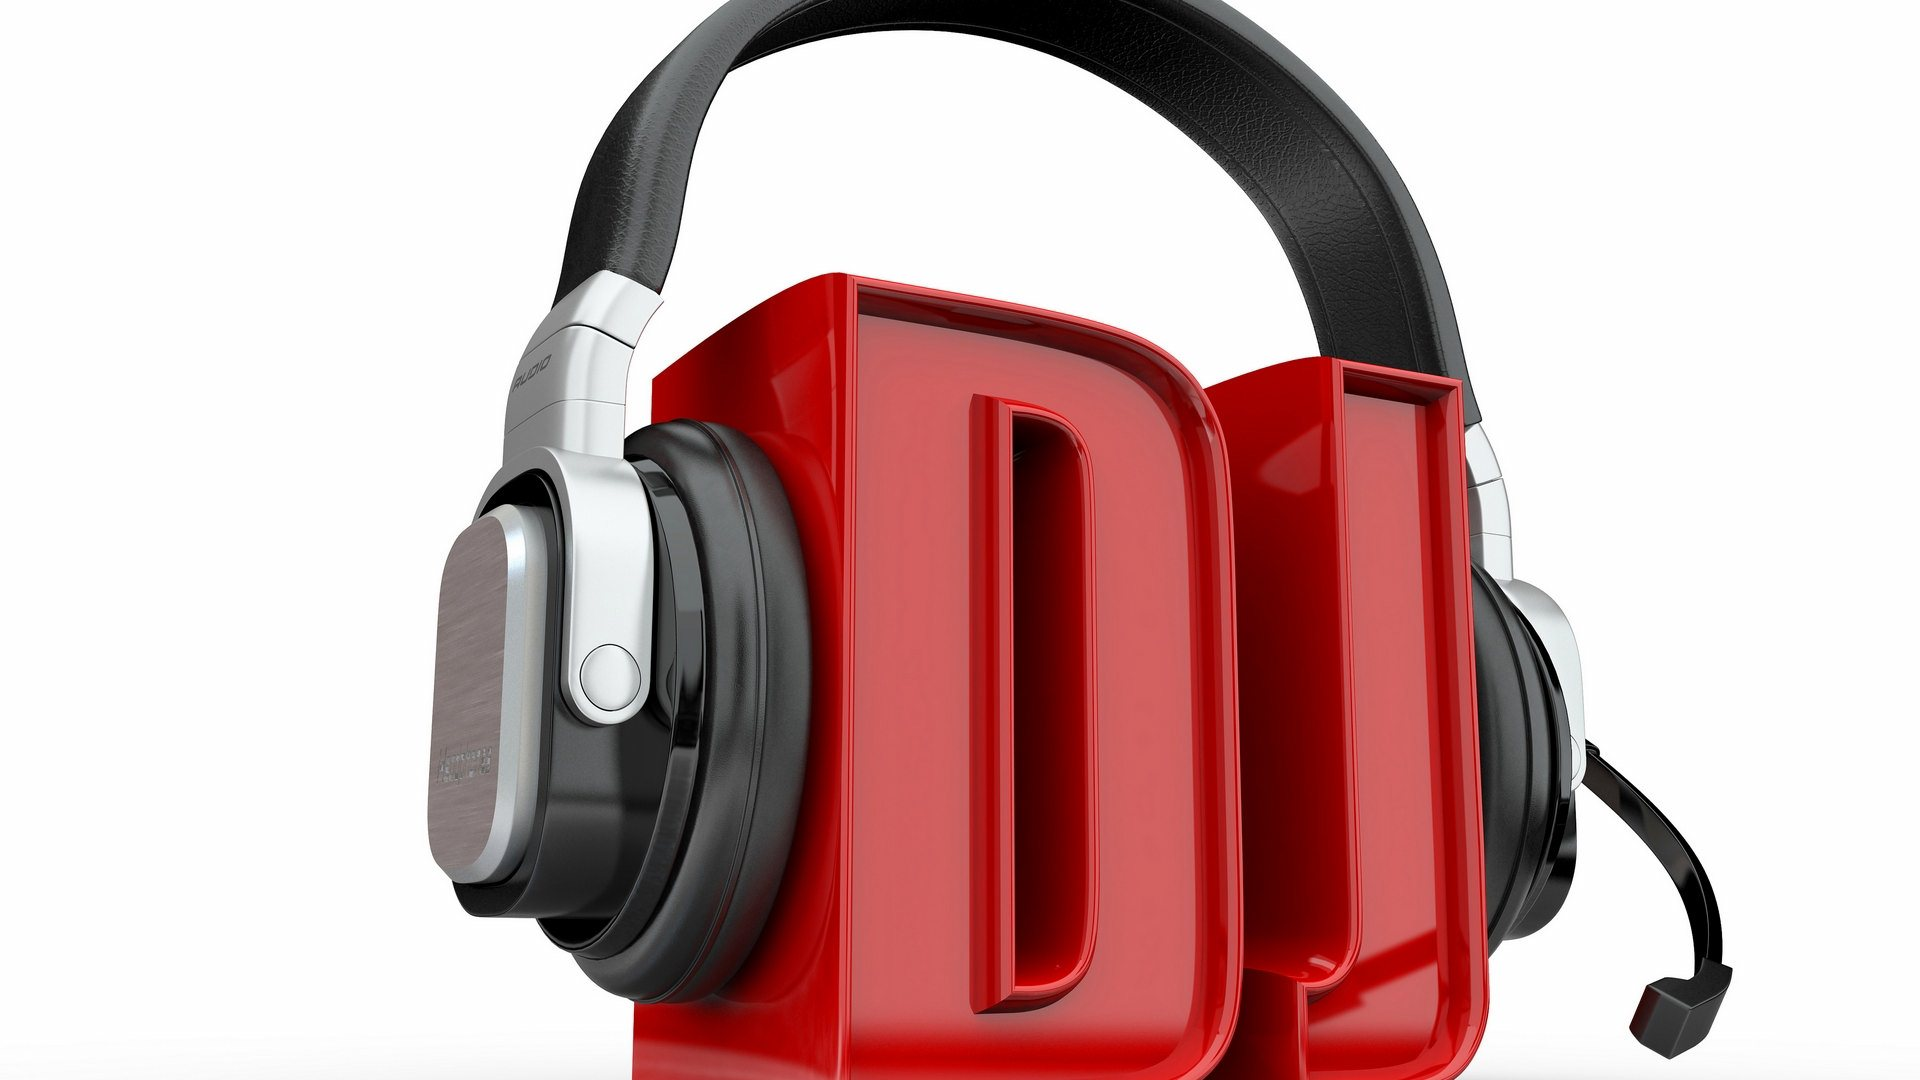 dj headphone wallpaper background, wallpapers